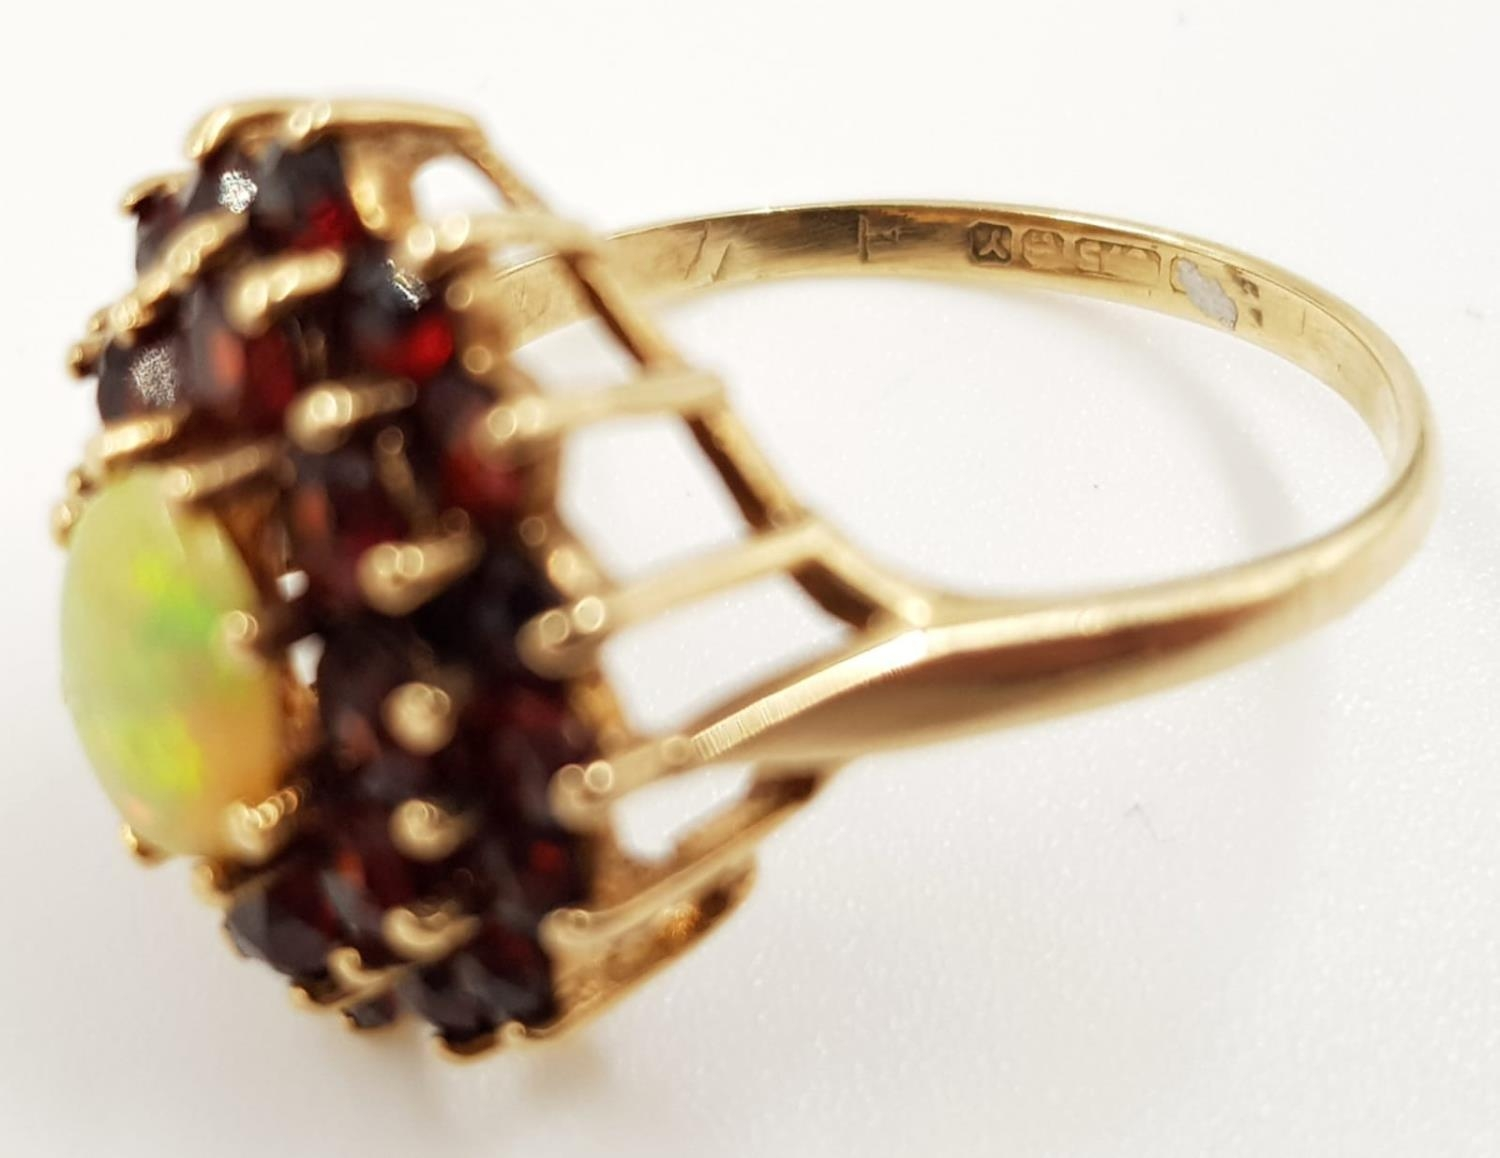 A 9ct gold, fire opal and garnet stone cluster ladies ring. 3.4g total weight. Size P. - Image 3 of 3